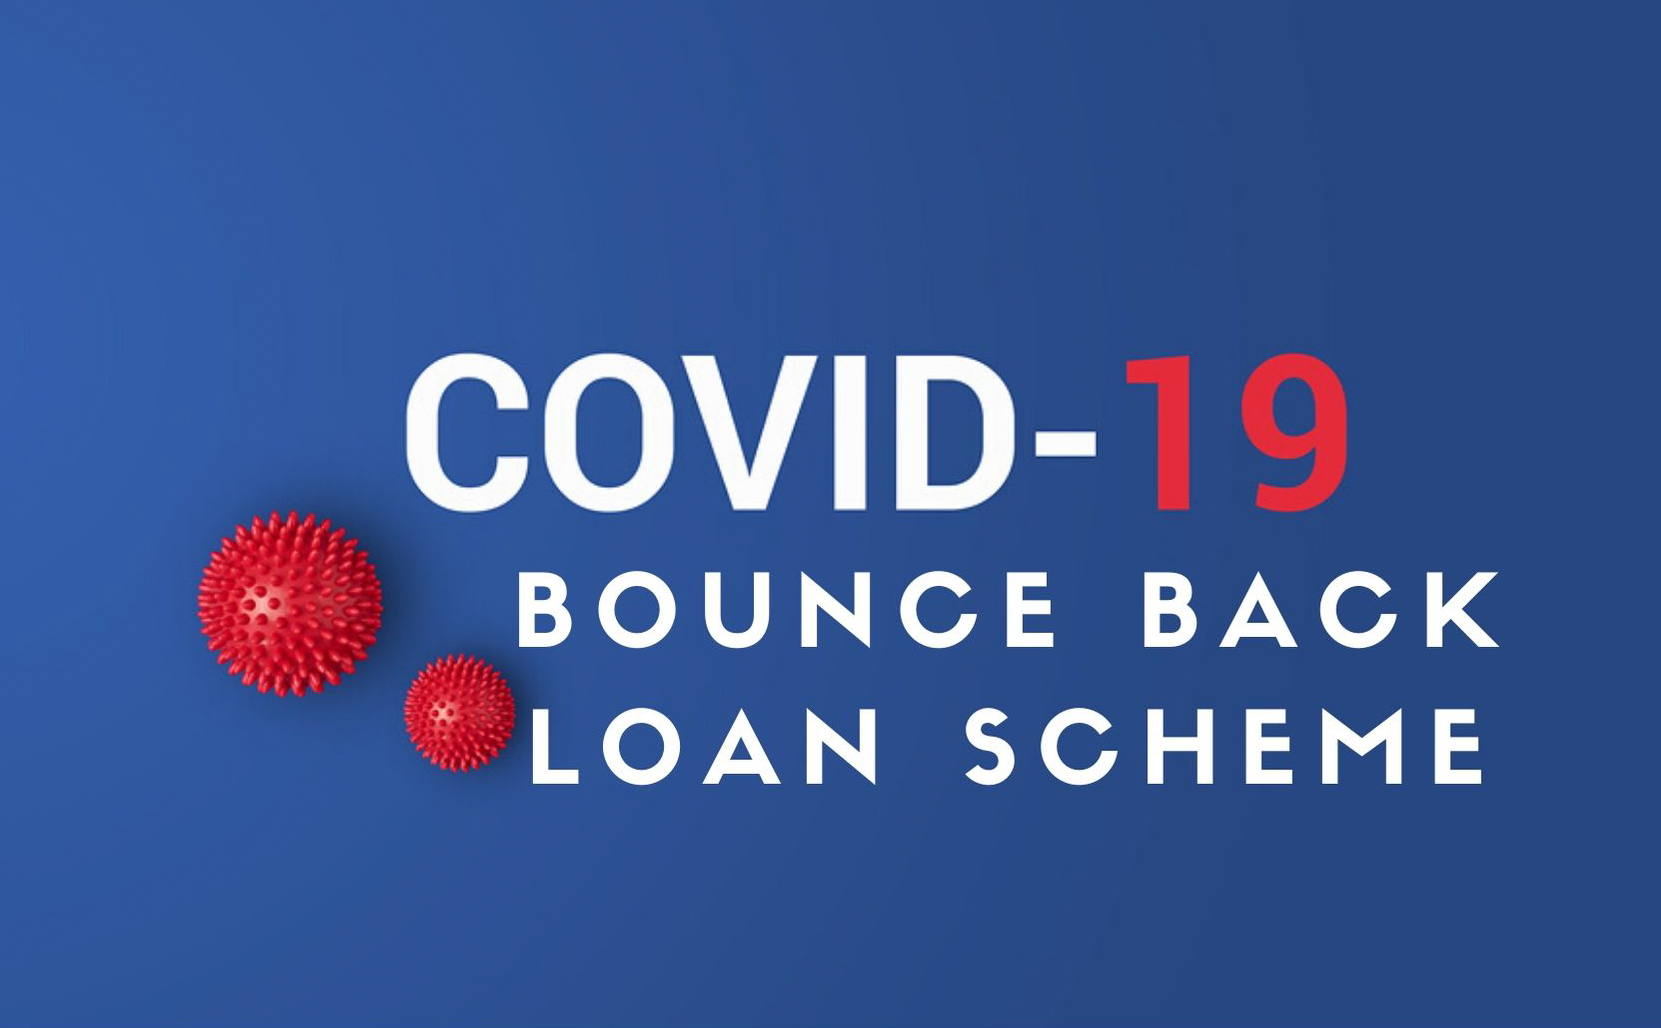 Government Bounce Back Loan Scheme